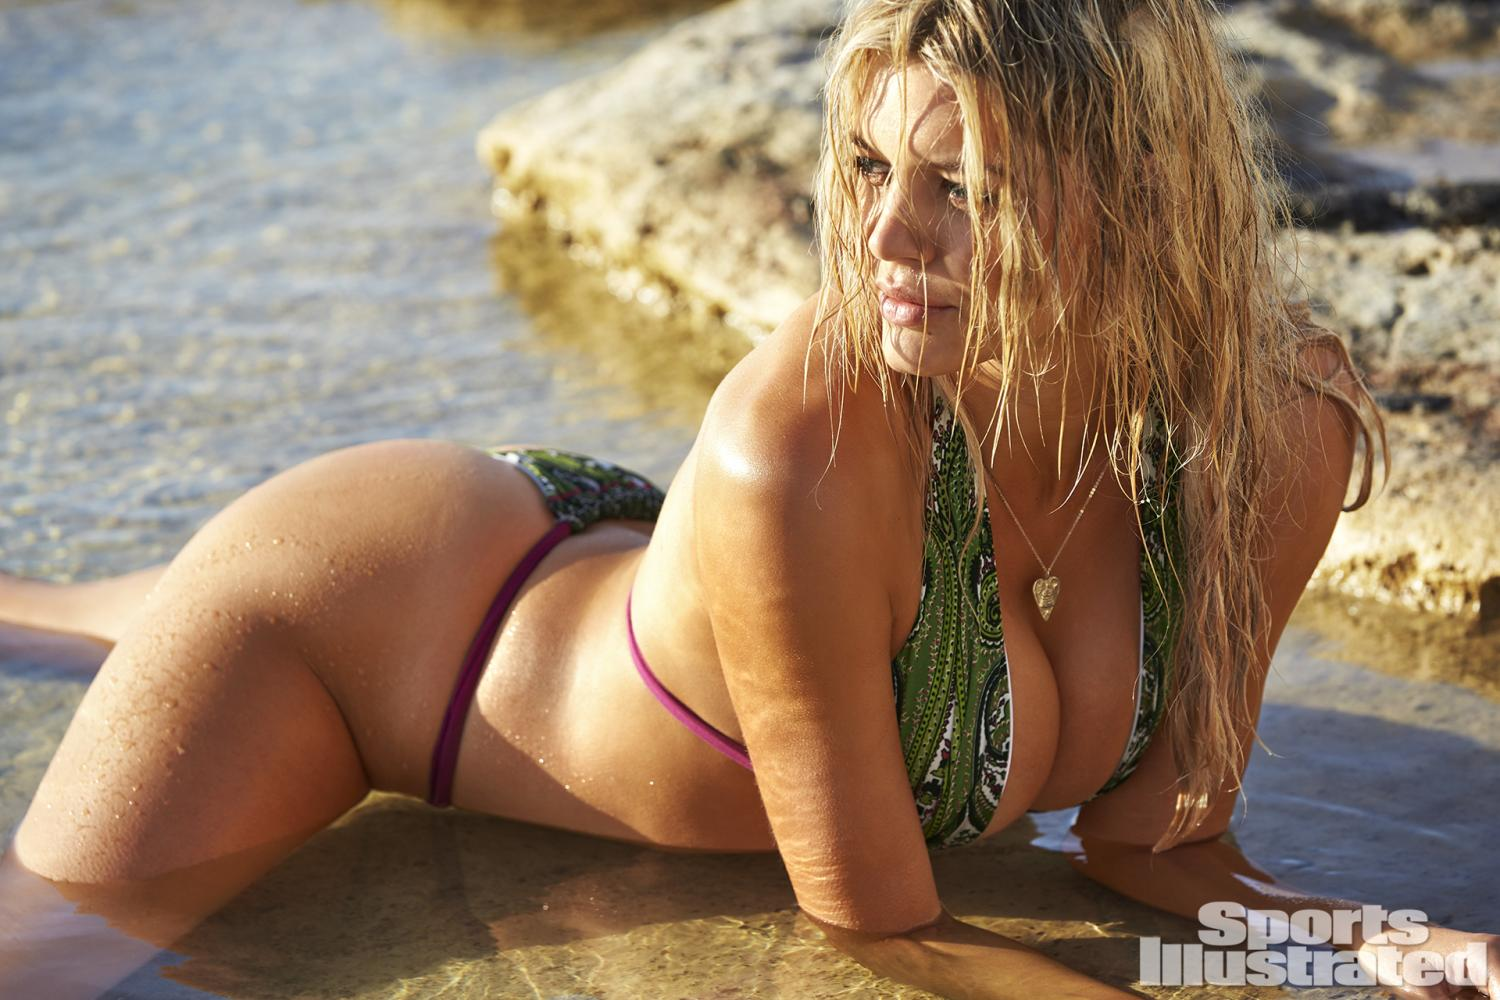 baywatch babe kelly-rohrbach shines in sexy 2016-sports-illustrated swimsuit edition 3